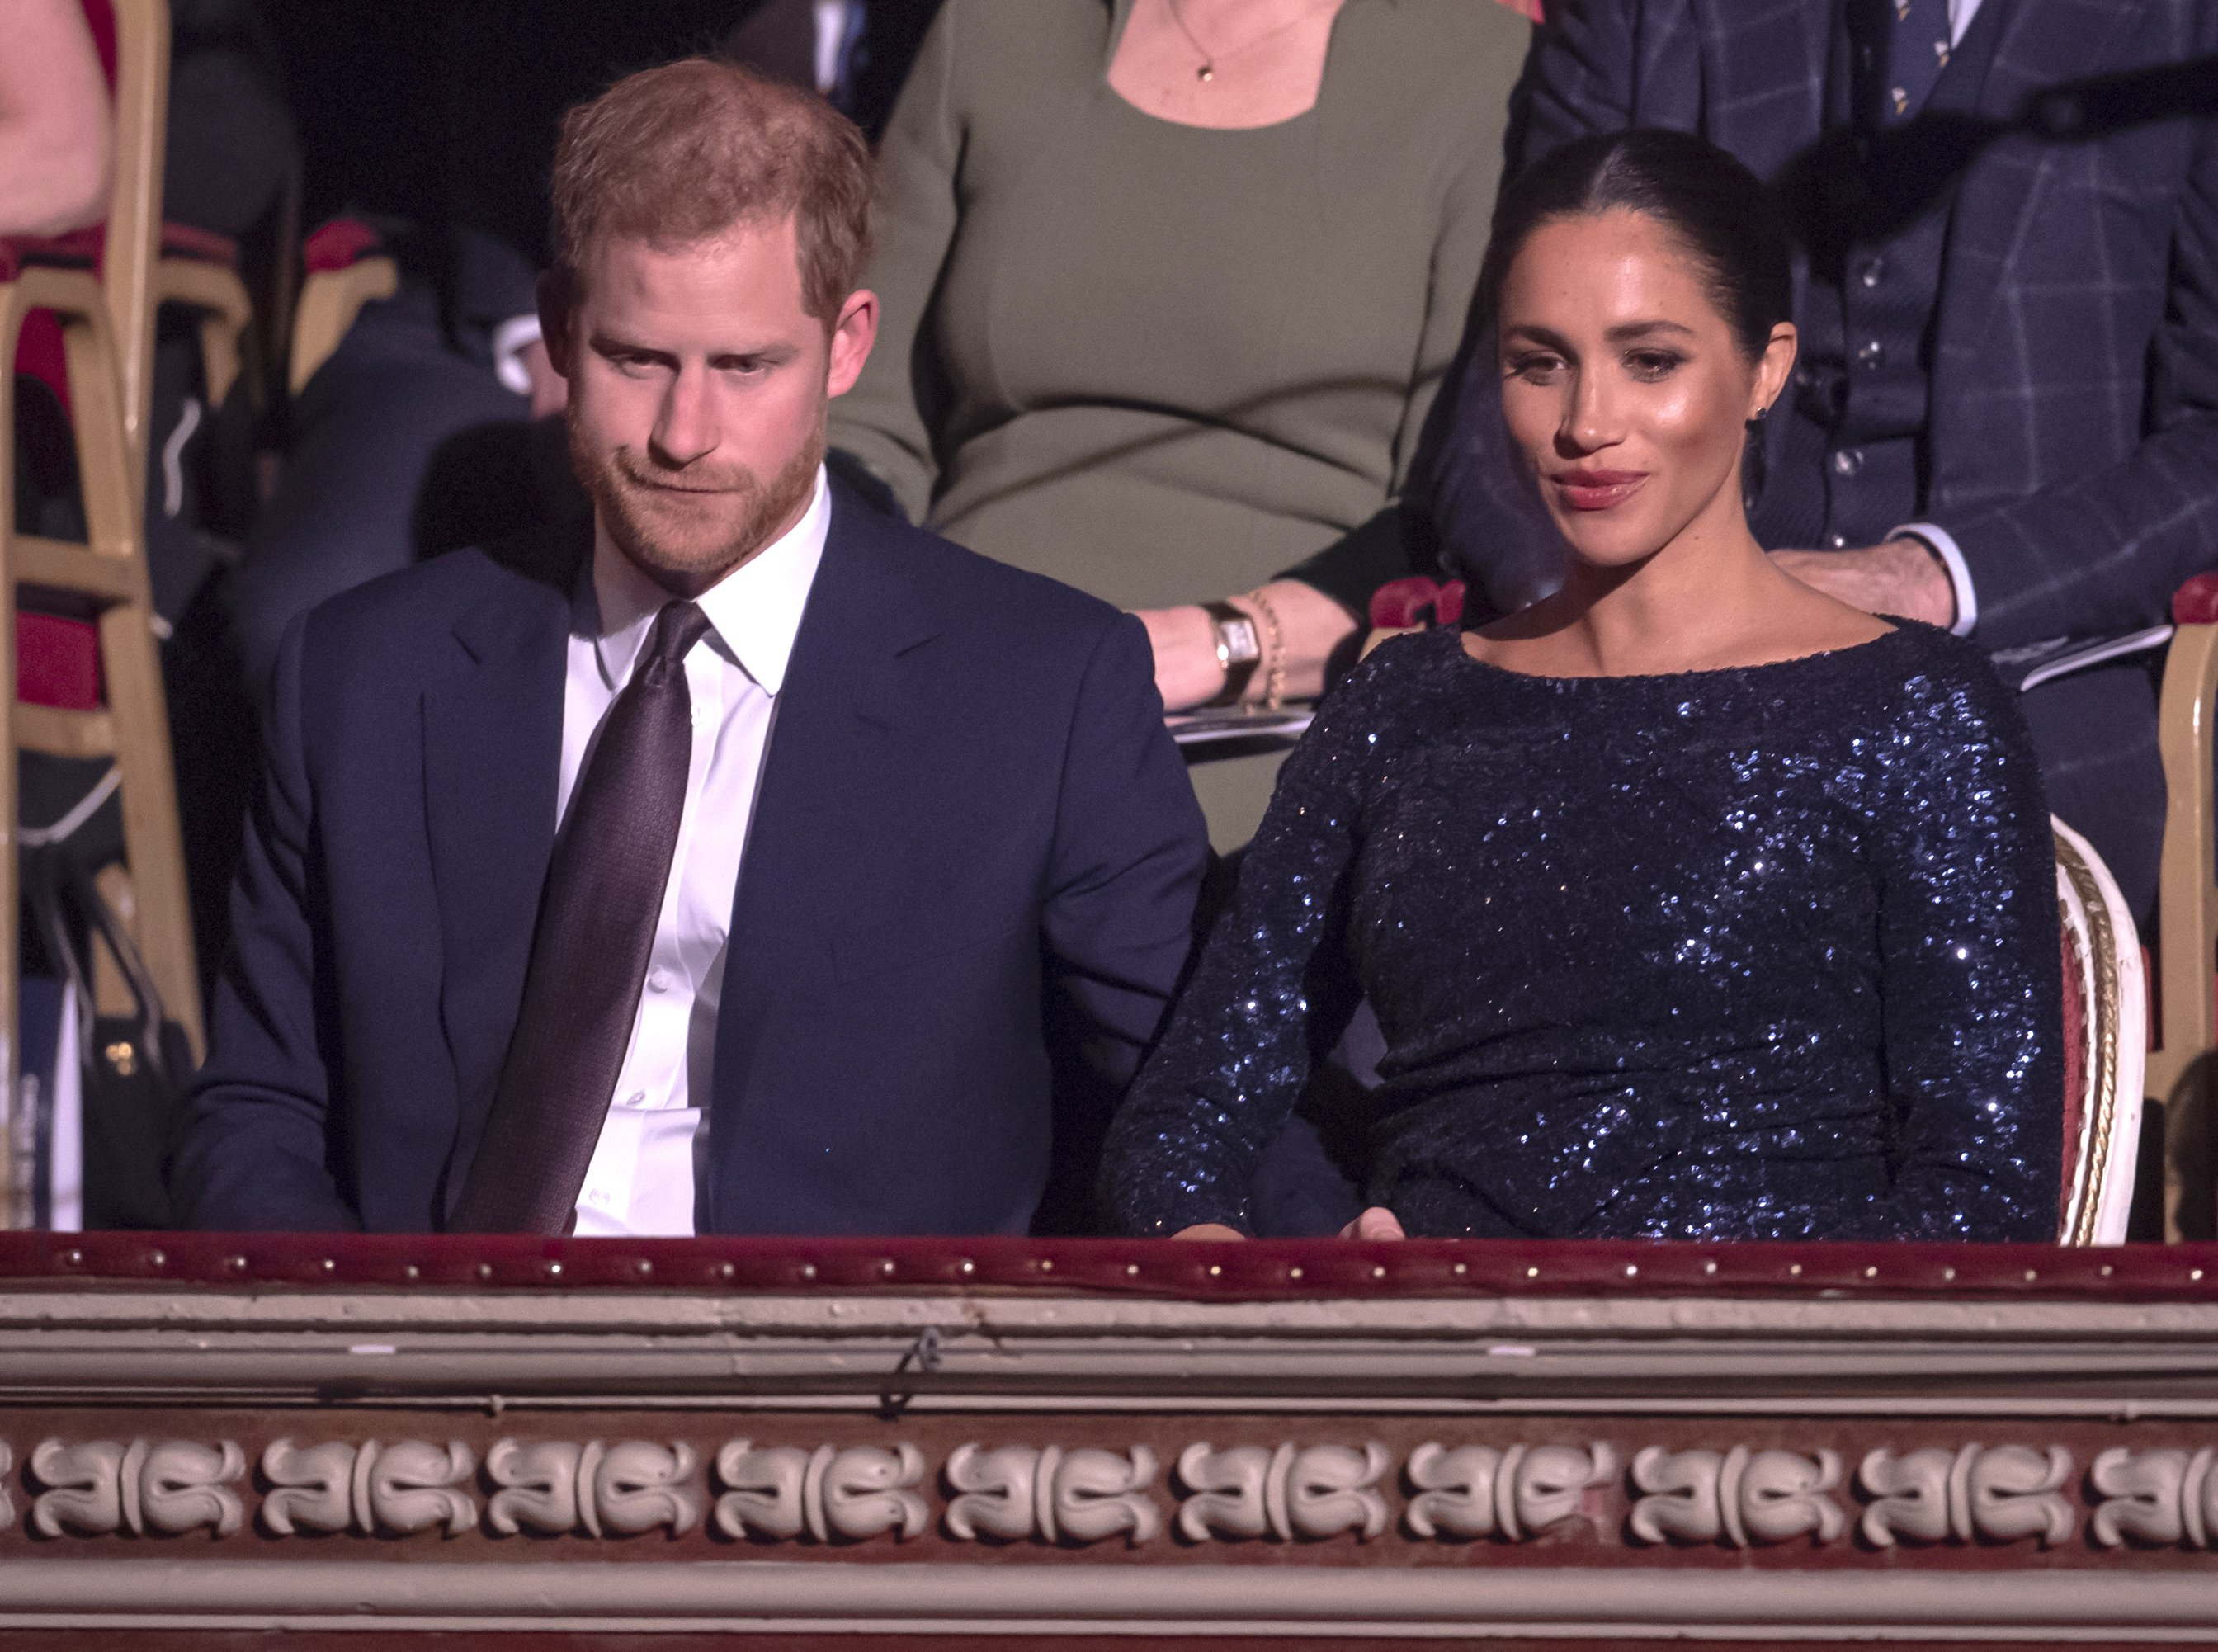 Prince Harry and Meghan Markle attending the premiere of Cirque du Soleil in London, January, 2019. | Photo: Getty Images.